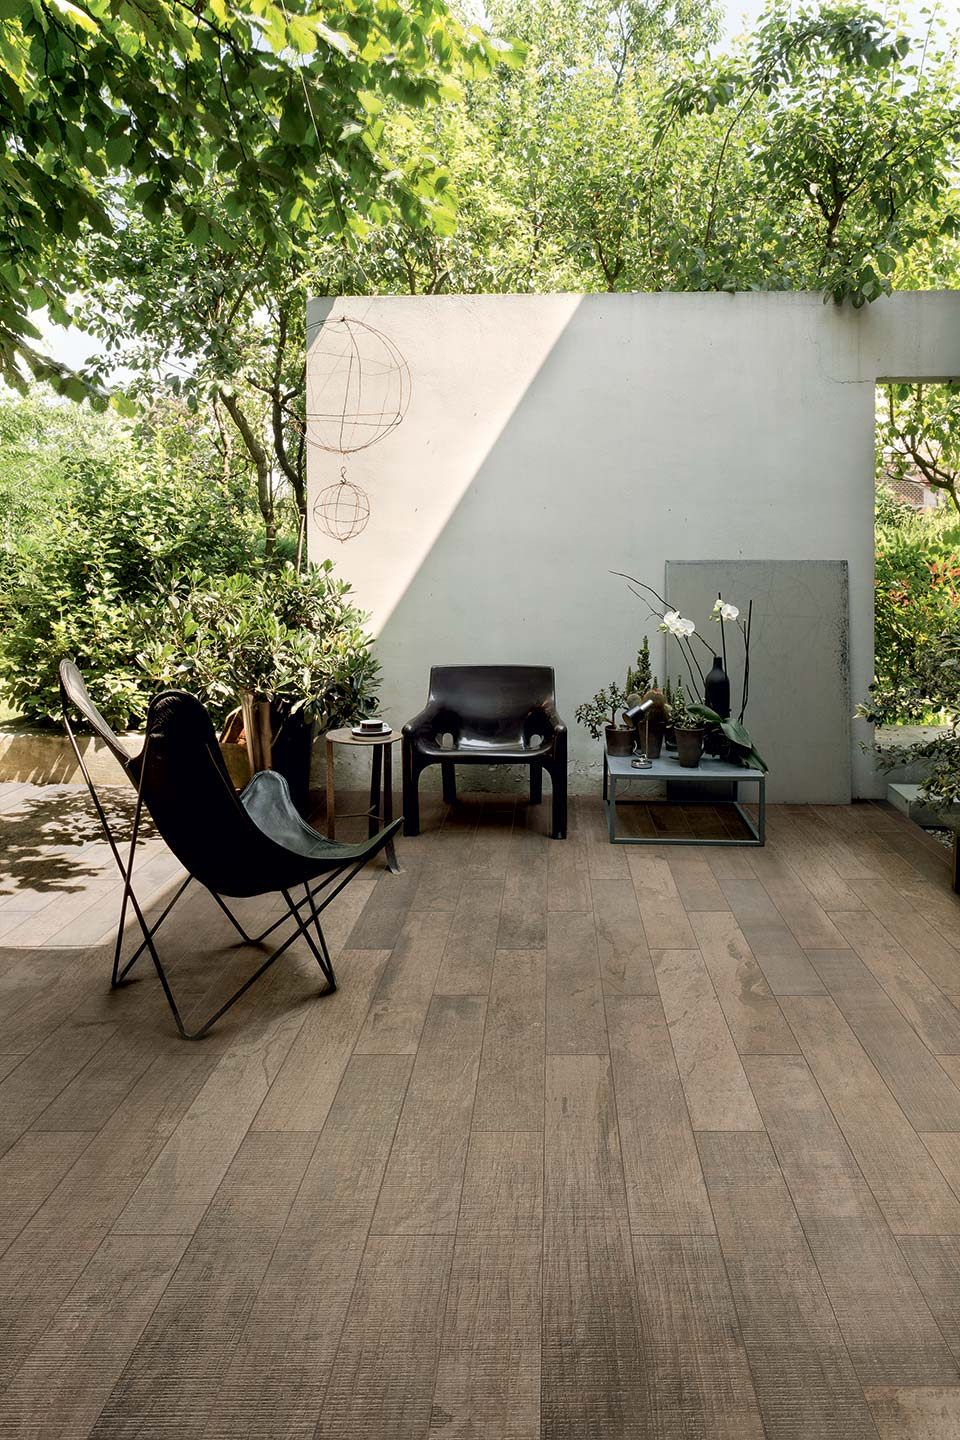 Outdoor Timber Tiles Wooden Tiles Aggeladakis Material Concept